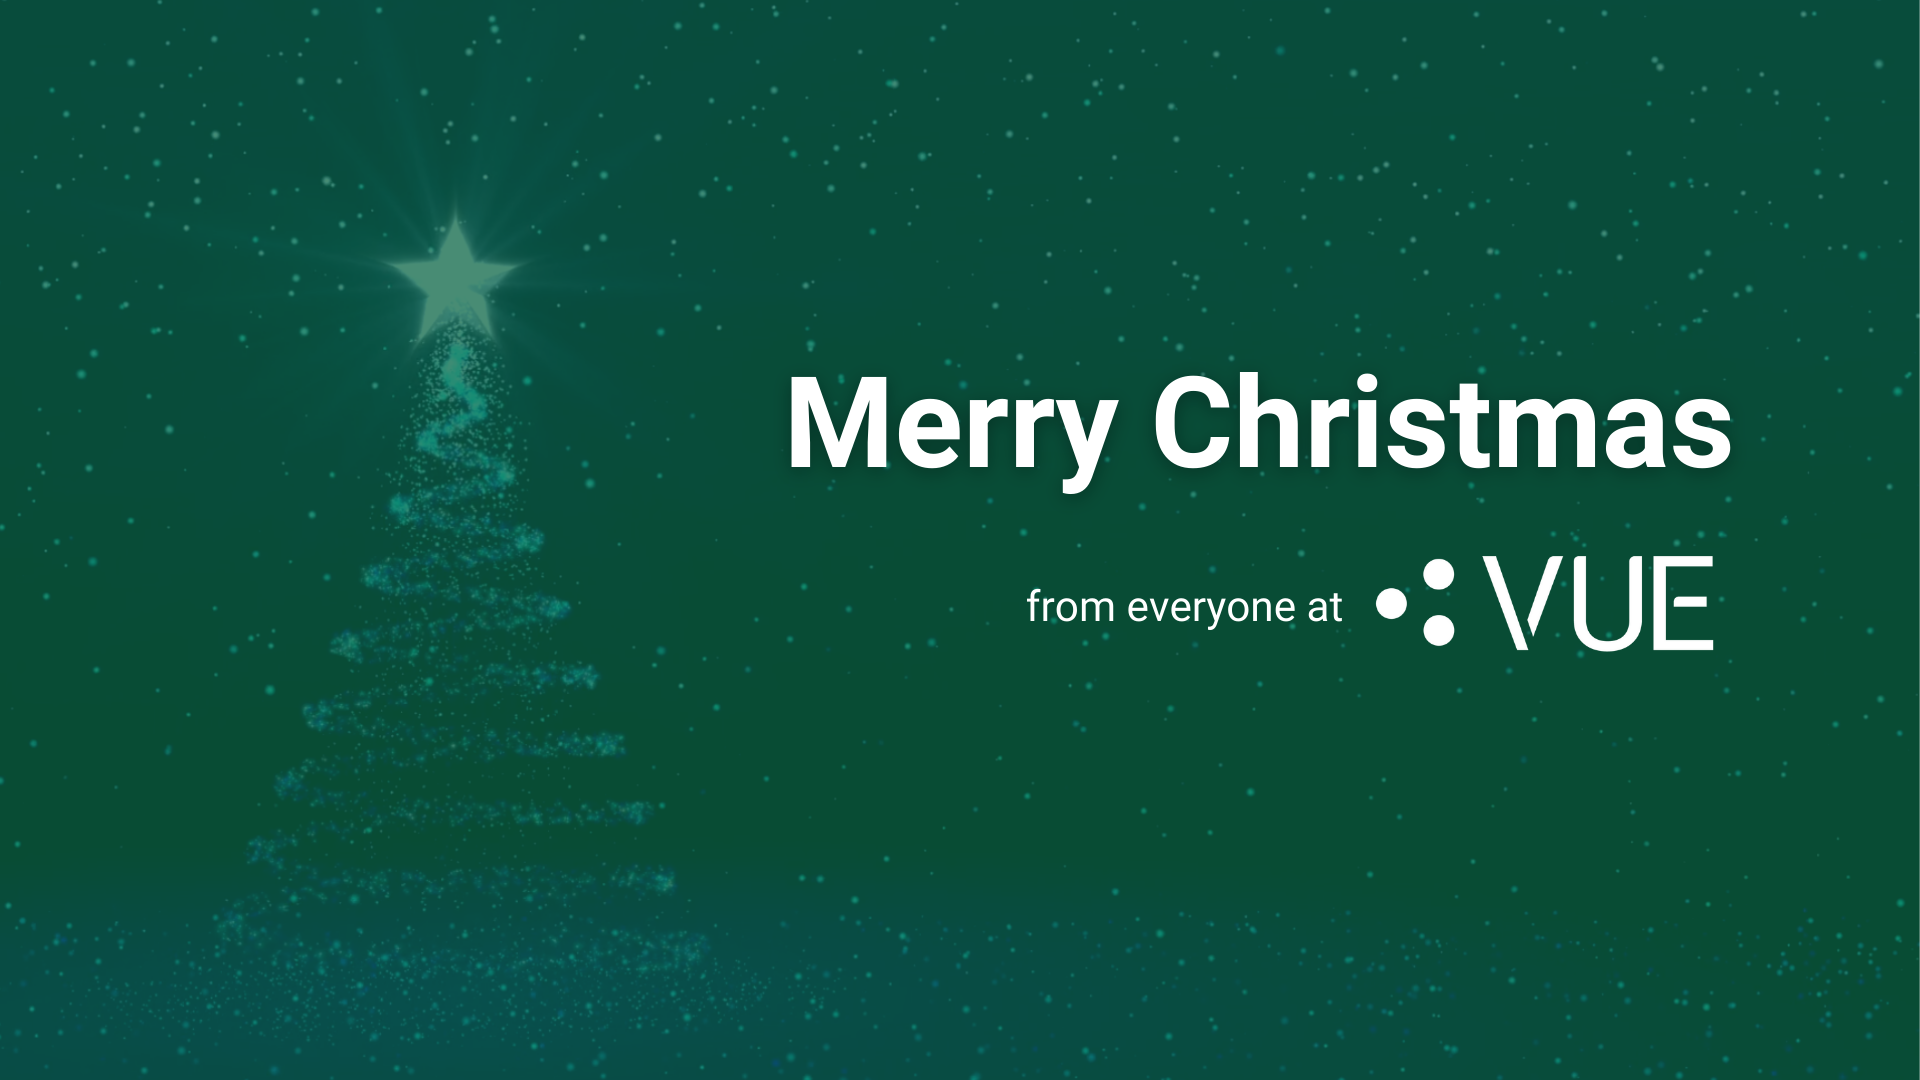 merry christmas from VUE